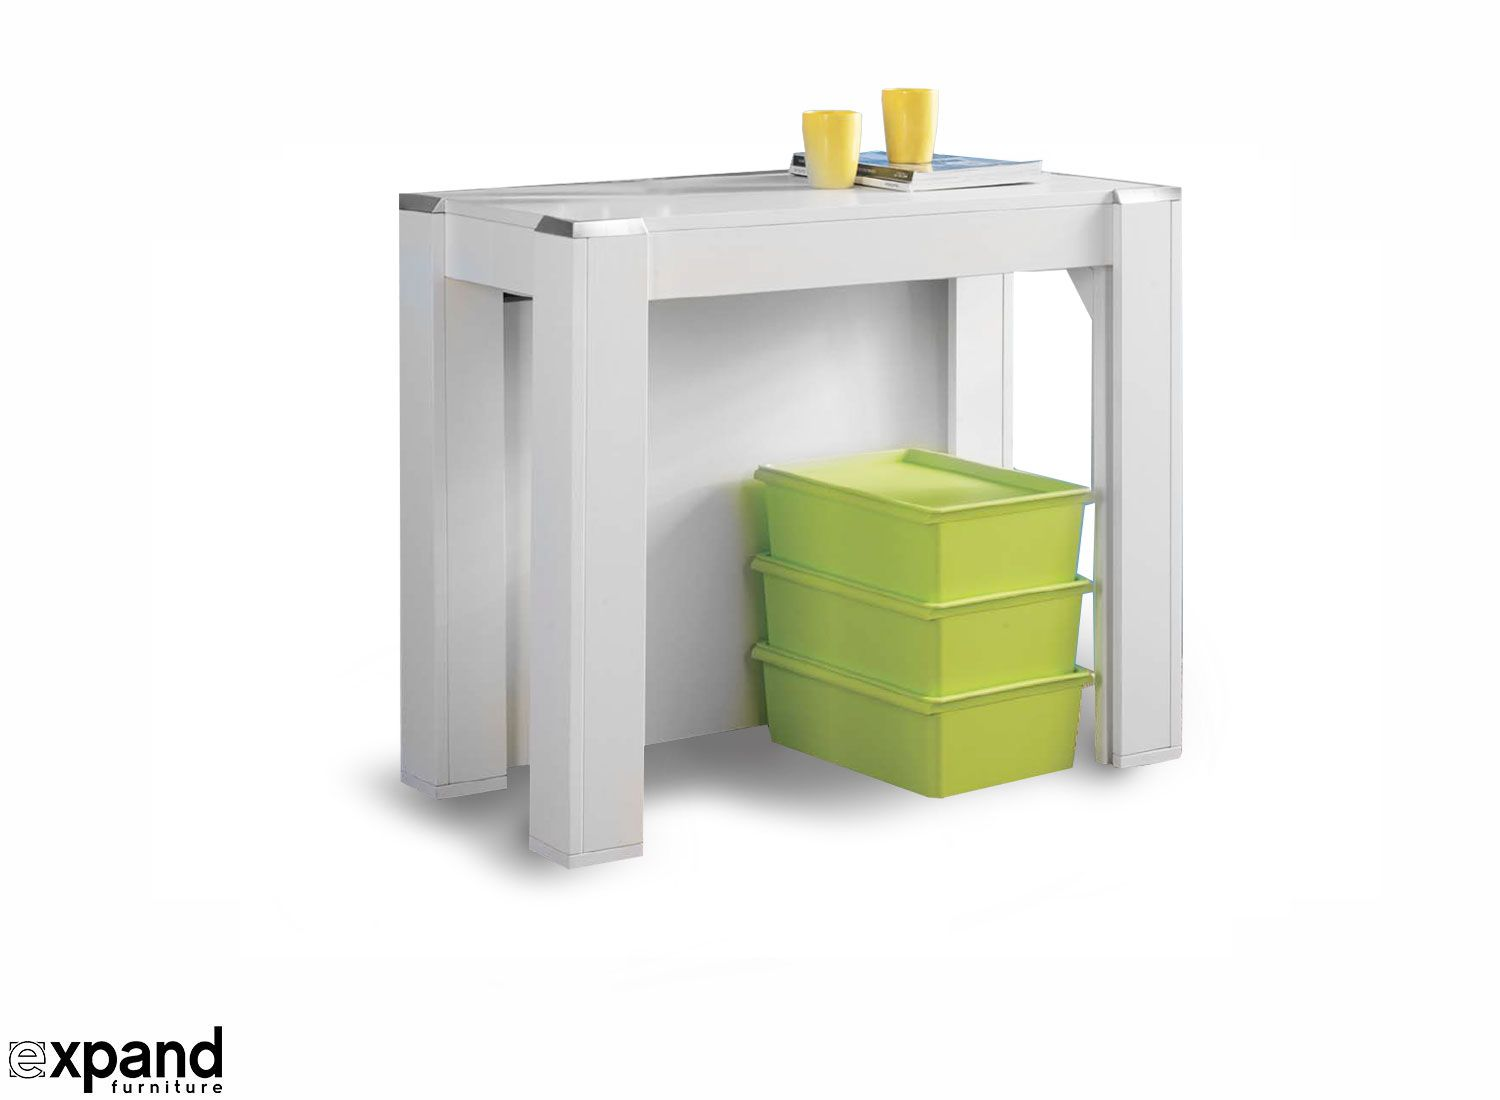 Console Convertible Table Expanda Console With Contained Extensions Buy Multi Use Expand